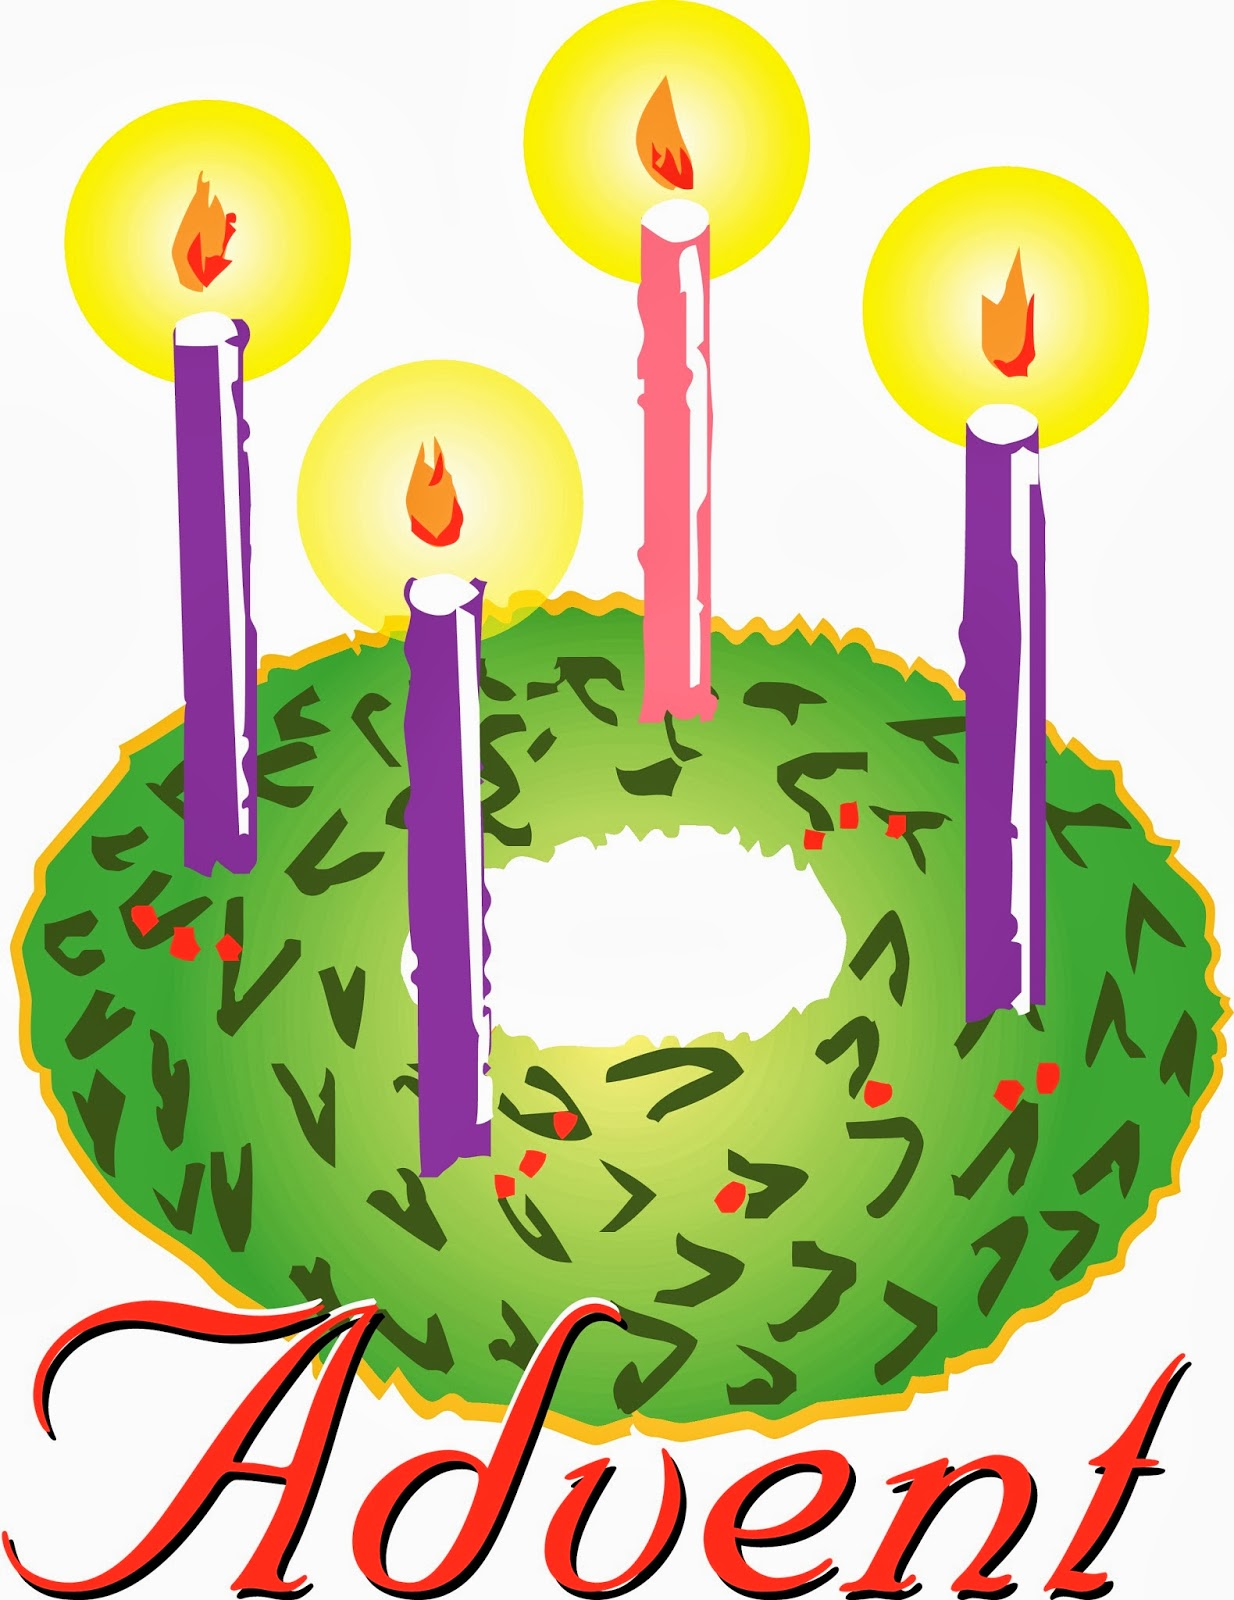 Advent Wreath One Candle Lit Clipart Bw.